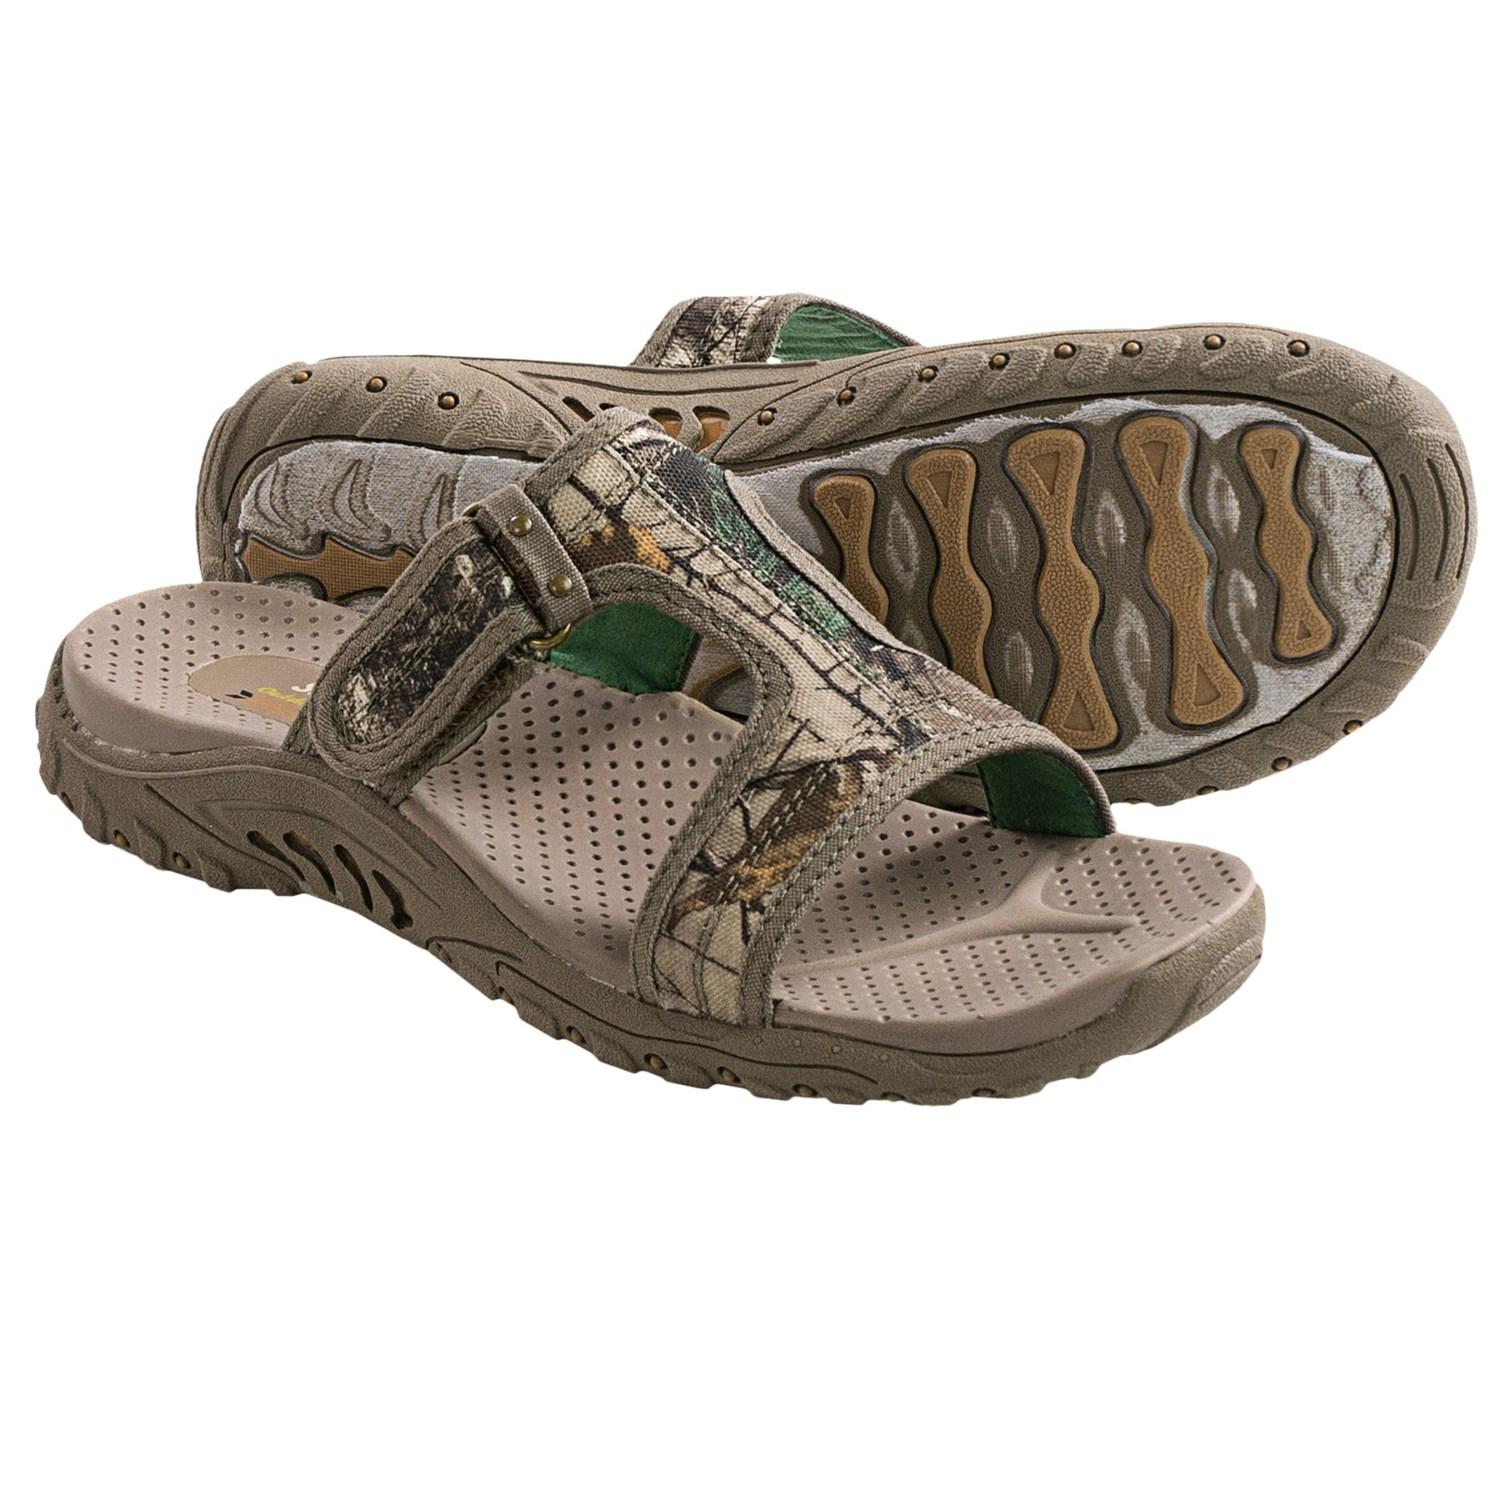 7af9a0bb4d9 skechers outdoor lifestyle sandals sale   OFF53% Discounted